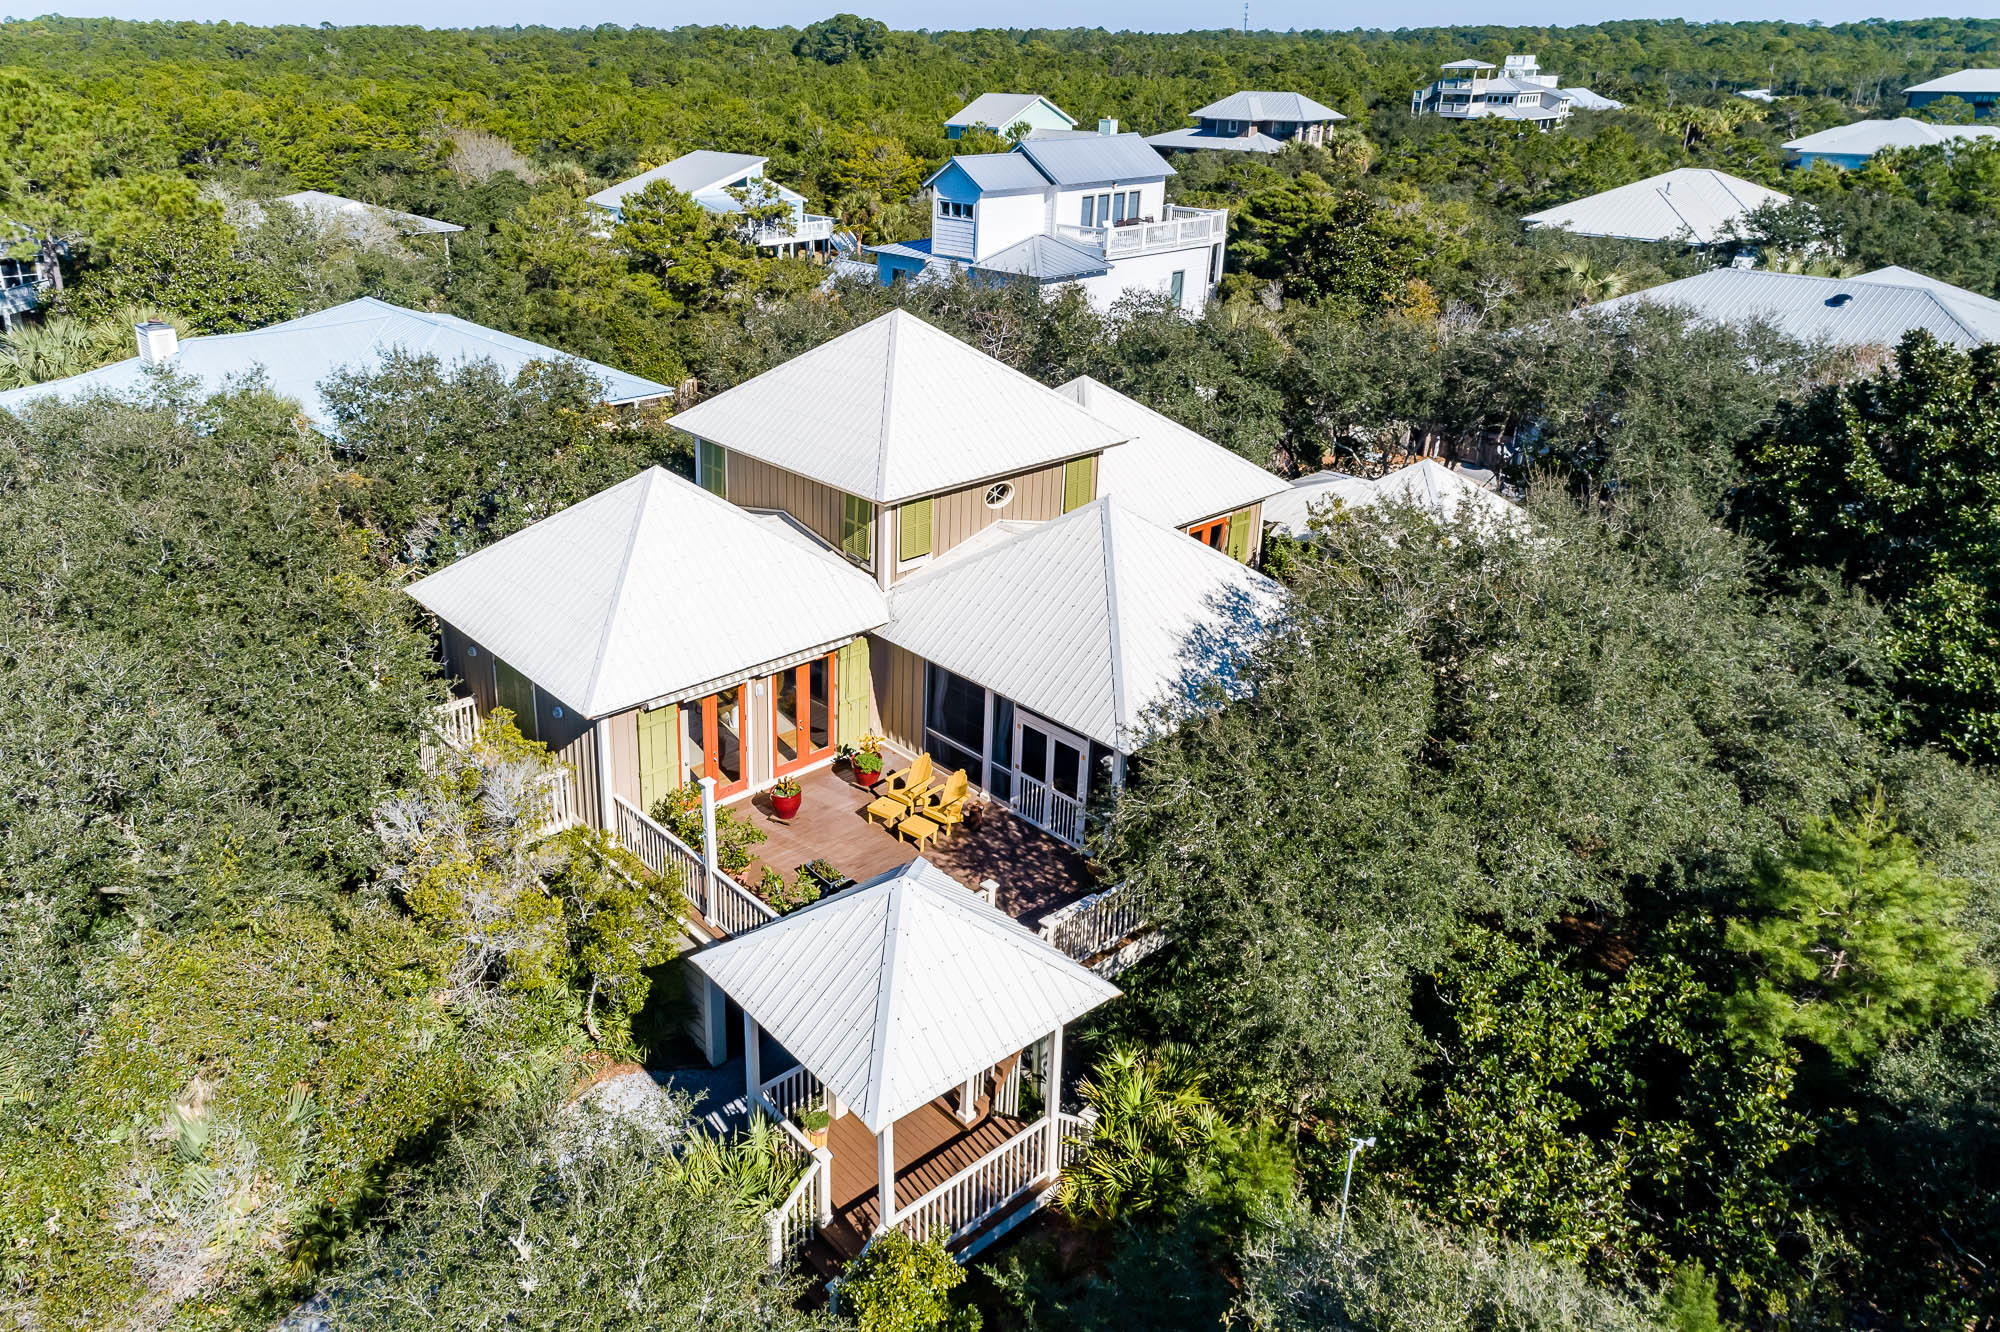 Nestled in the private neighborhood of Gulf Trace in Grayton Beach, you'll find this unique, cozy be